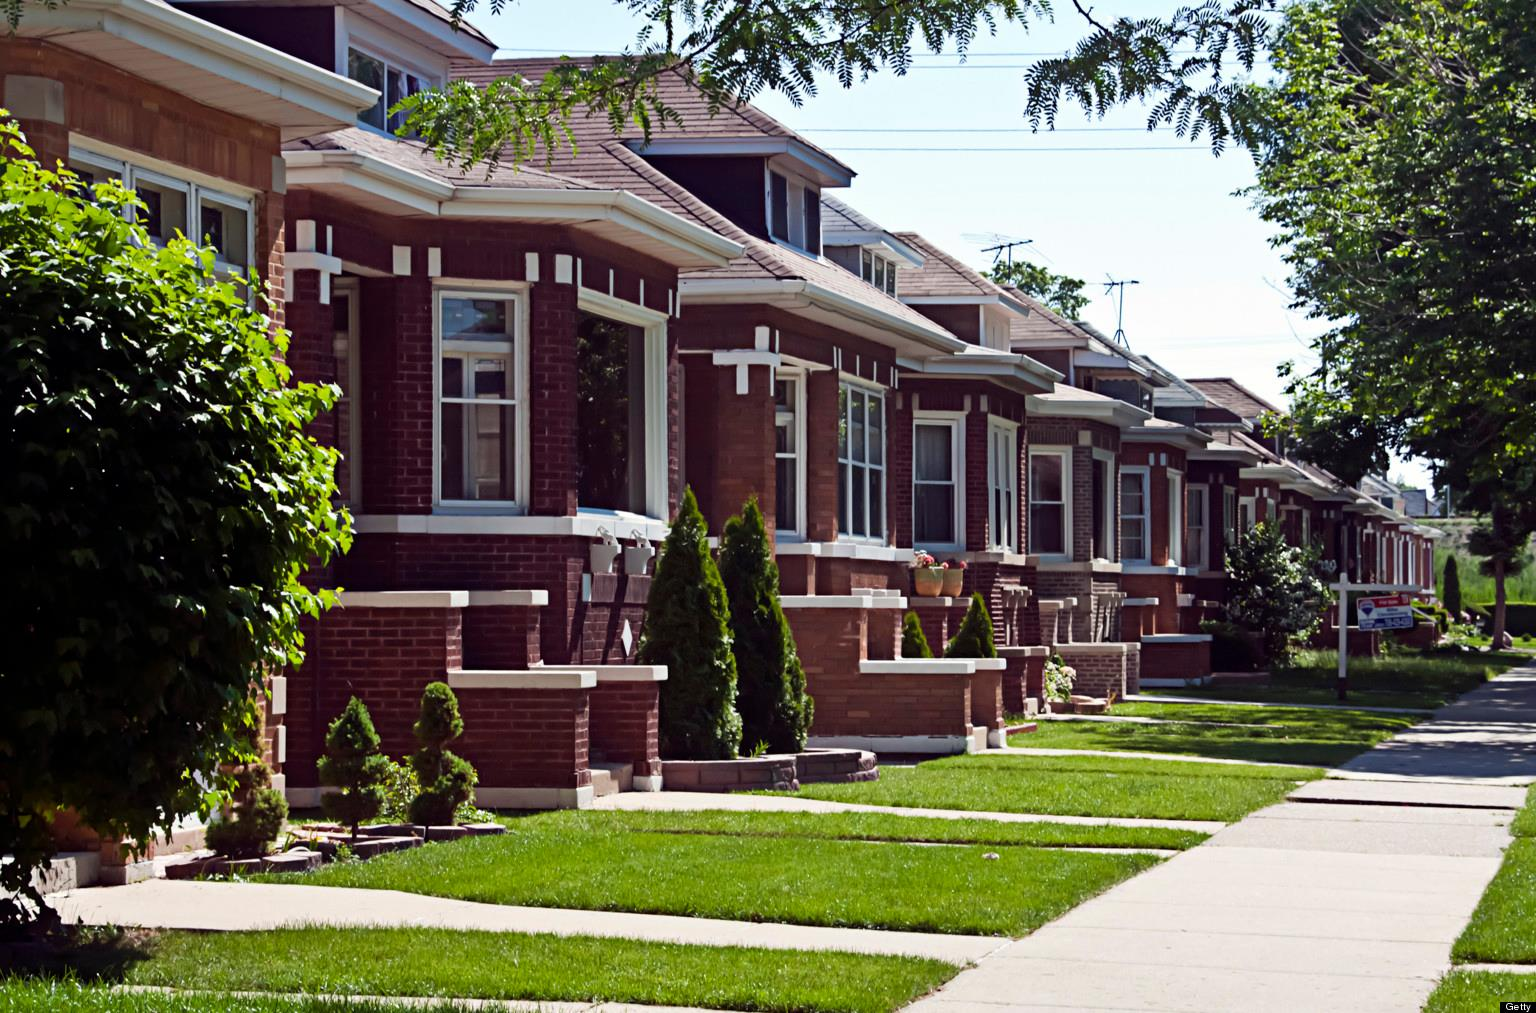 NOW IS THE TIME FOR FDI PLAYERS TO JOIN THE CANADIAN HOUSING MARKET